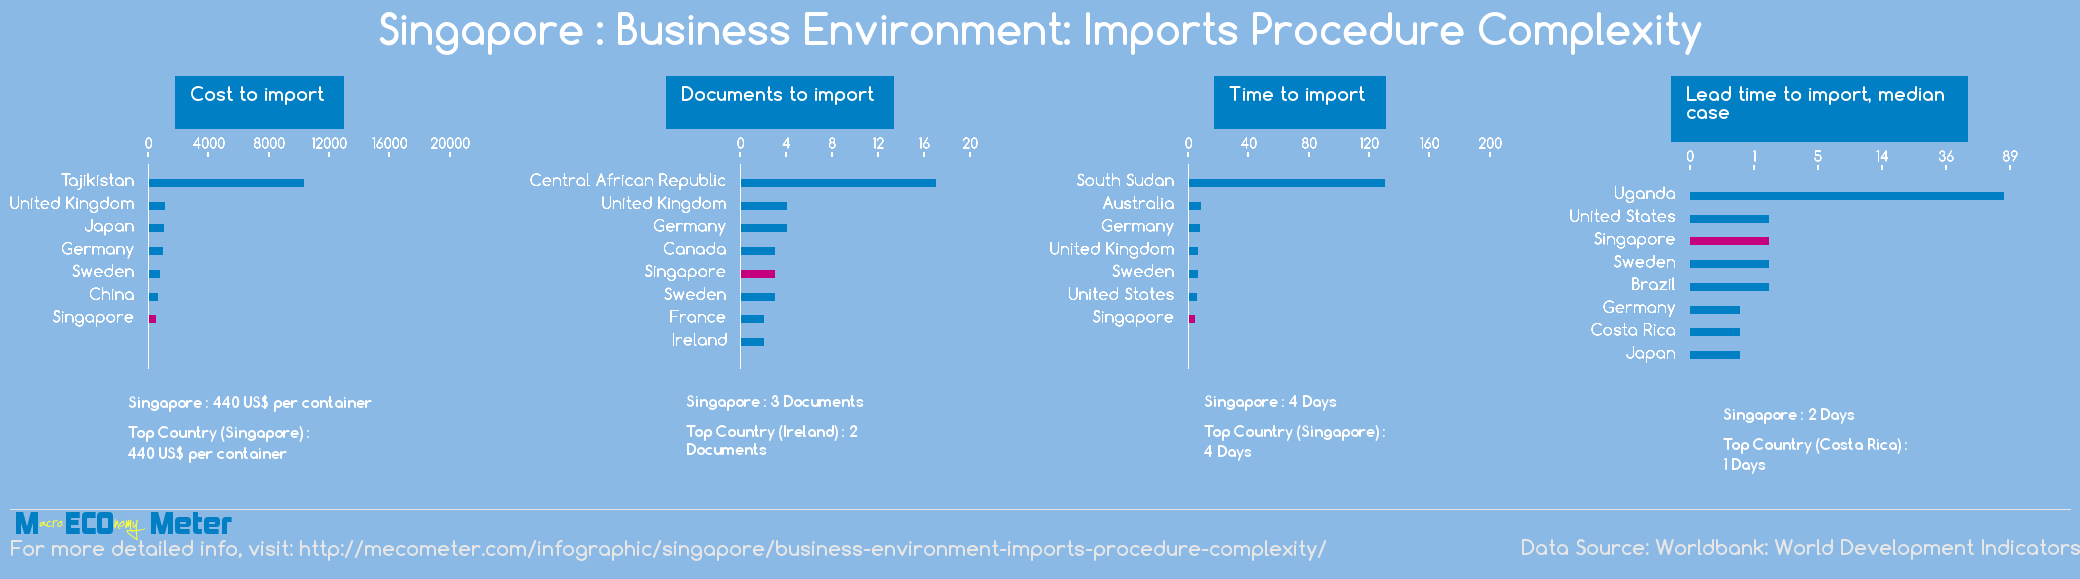 Singapore : Business Environment: Imports Procedure Complexity